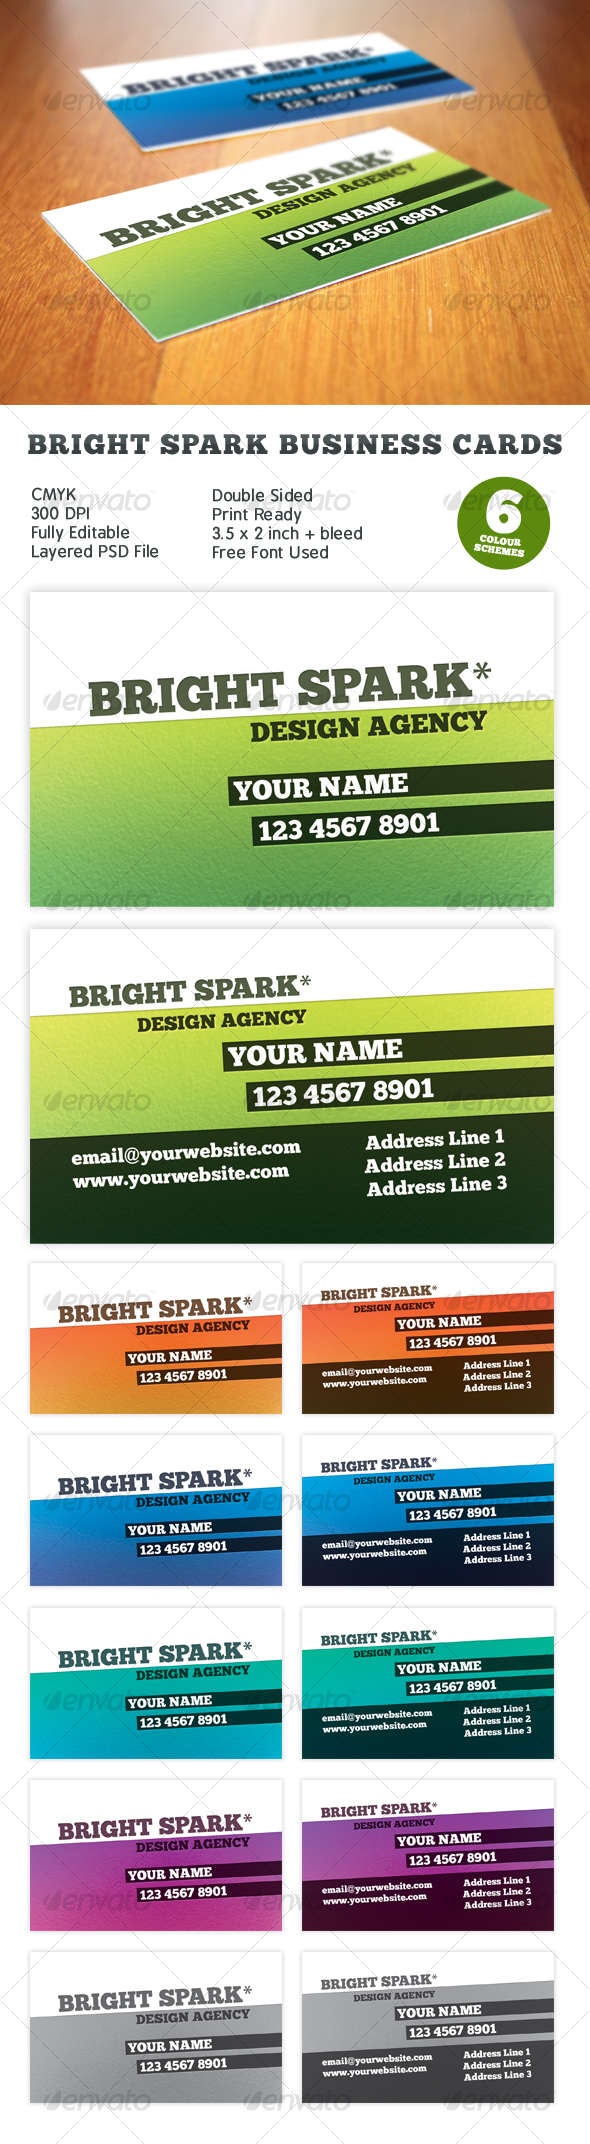 GraphicRiver Bright Spark Print Ready Business Card 108794